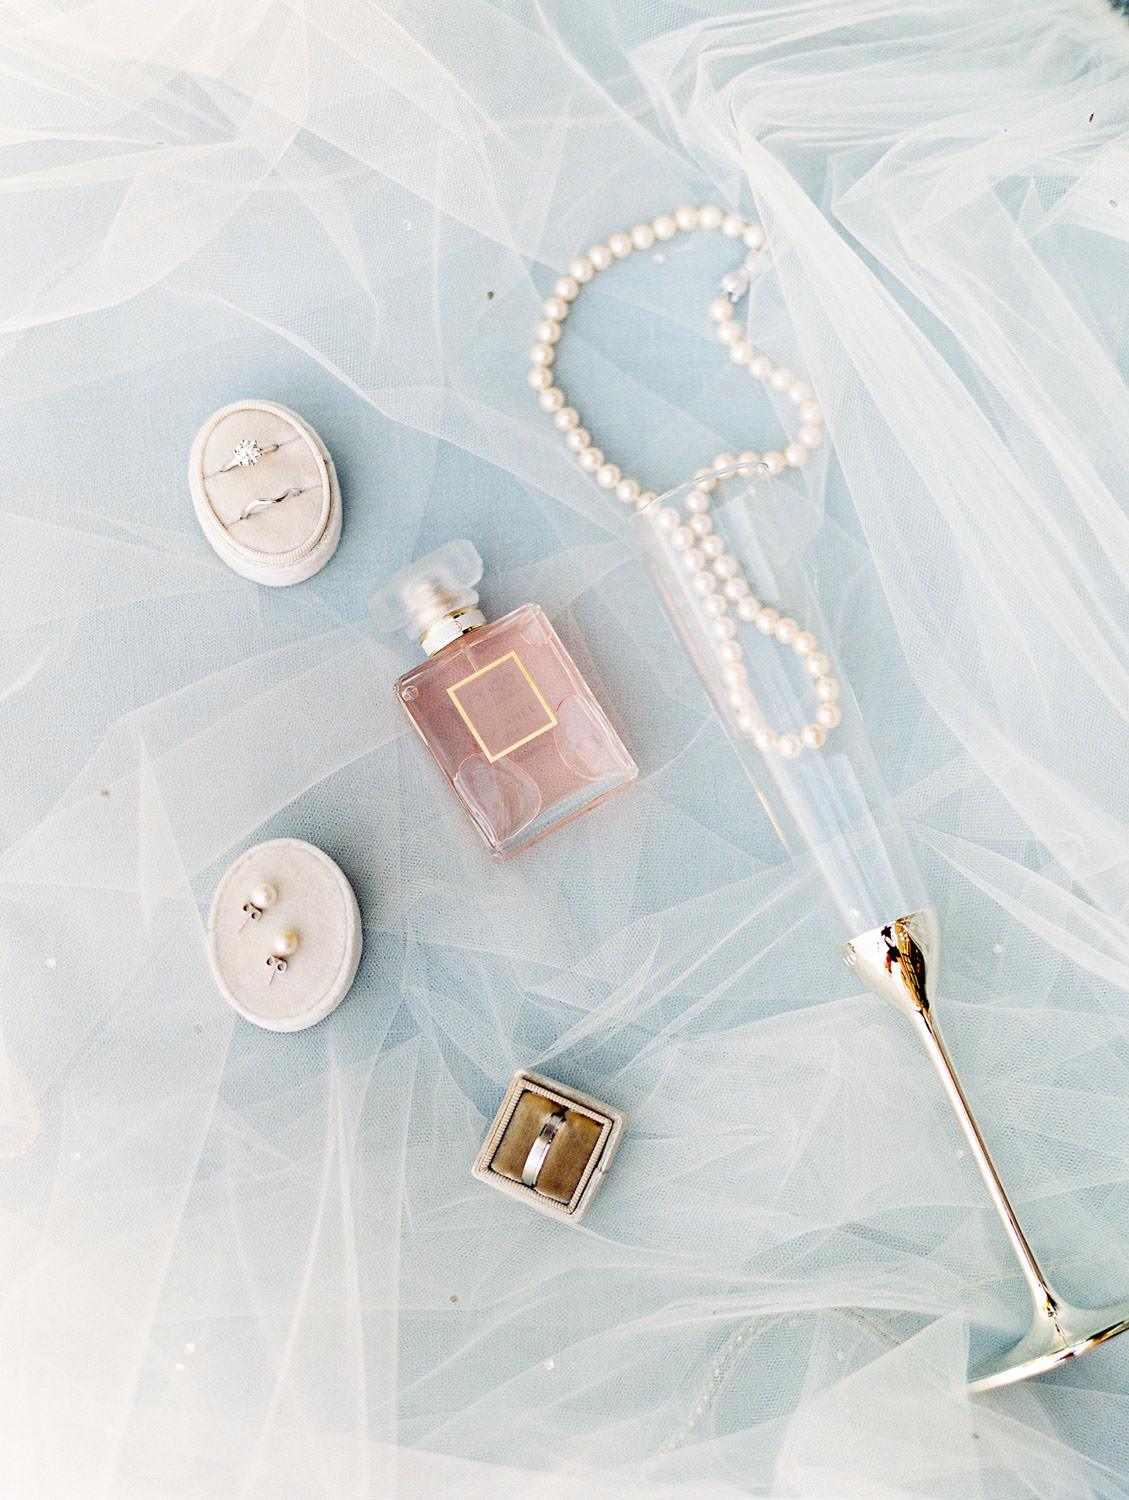 Bride's perfume, veil, rings, and earrings with special champagne flute and pearls, Del Mar Country Club Wedding by Cavin Elizabeth Photography